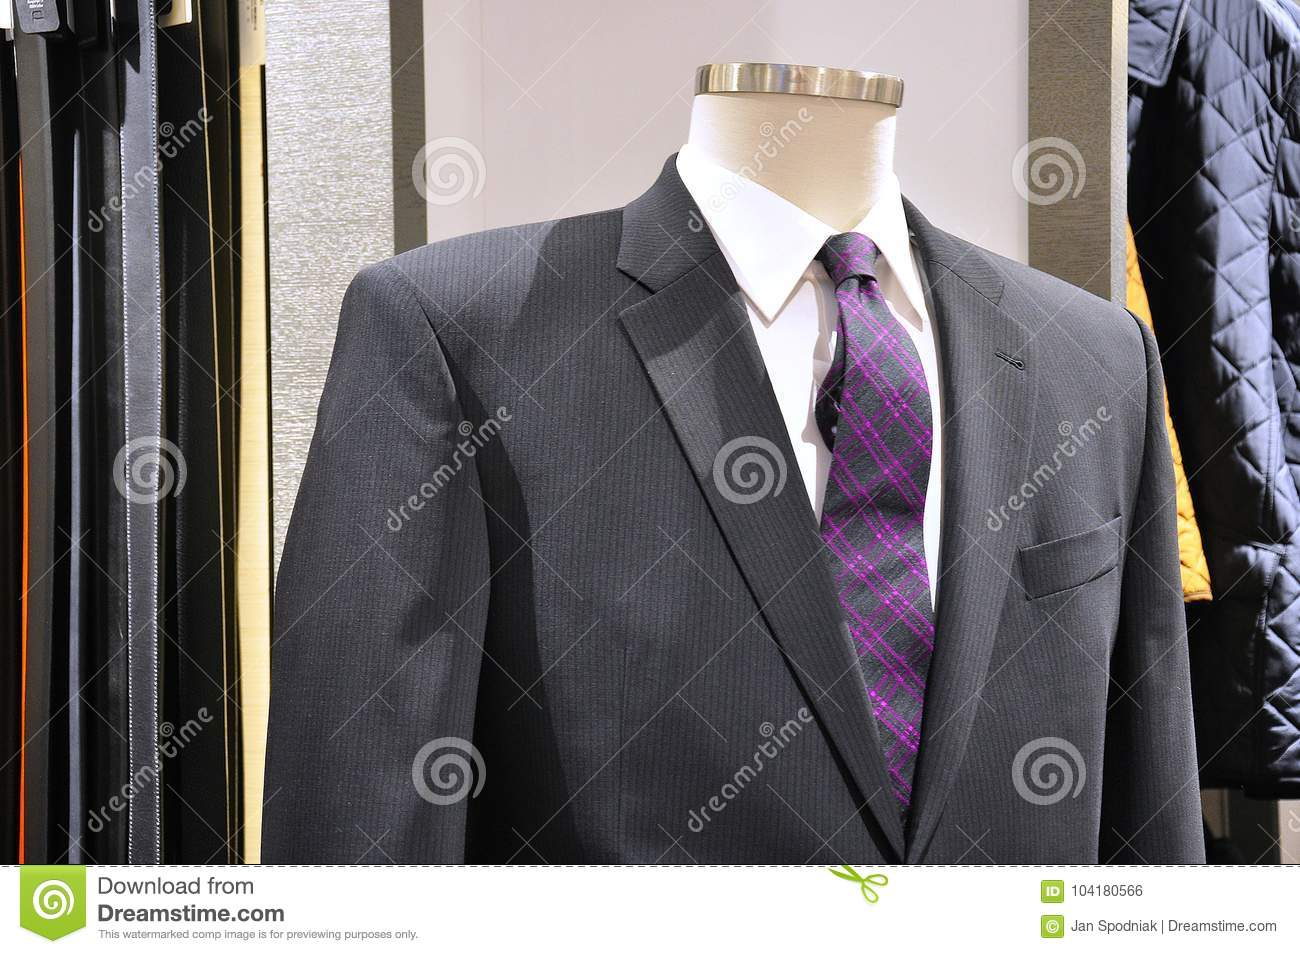 564eb8eb33a8 The Perfect Elegant Grey Suit With Purple Tie Stock Photo - Image of ...